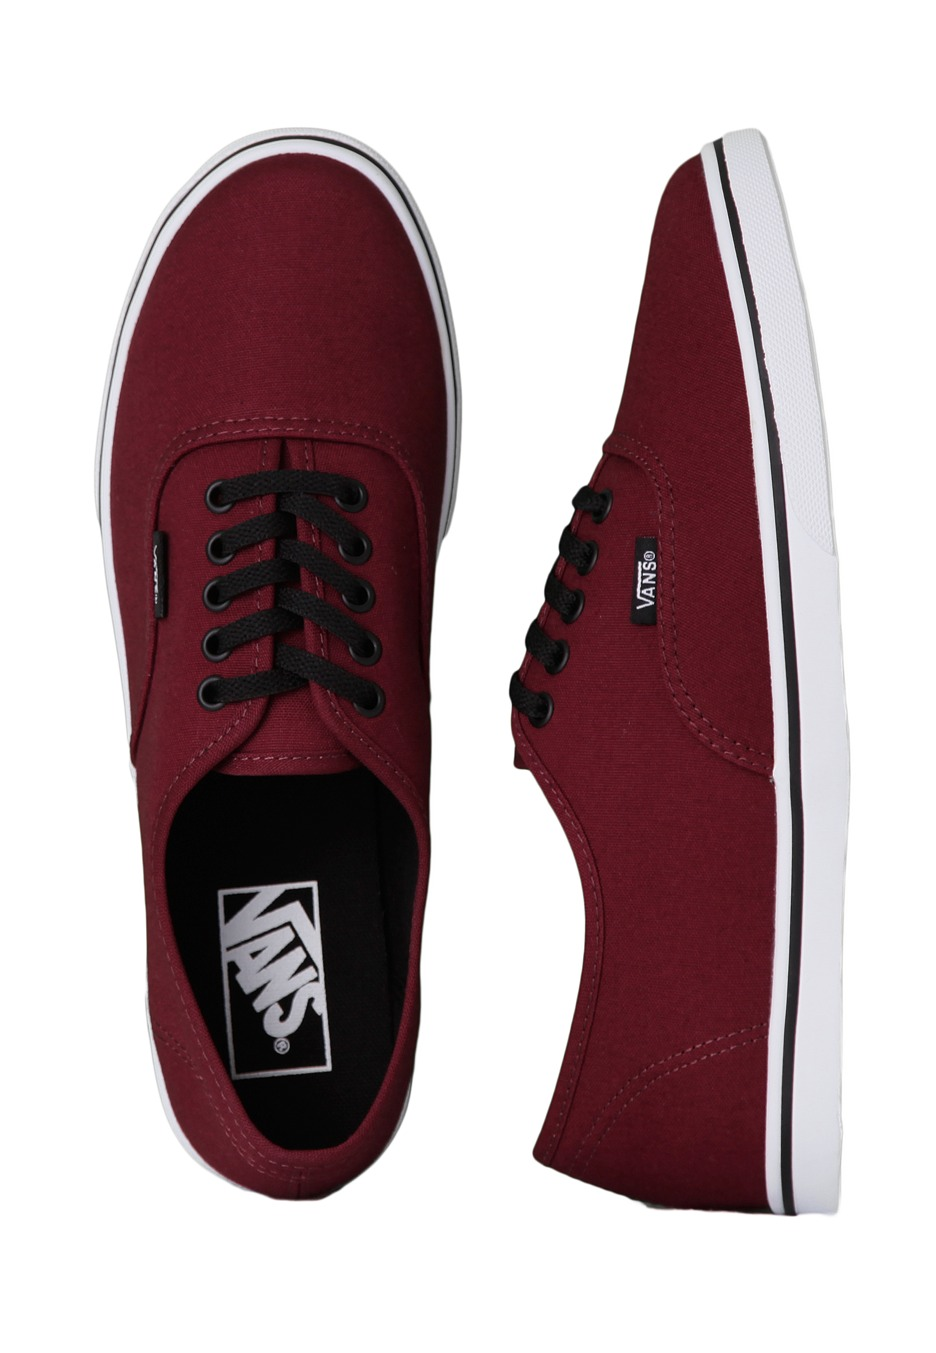 4f7b65f63340 Vans - Authentic Lo Pro Tawny Port True White - Girl Shoes - Impericon.com  UK